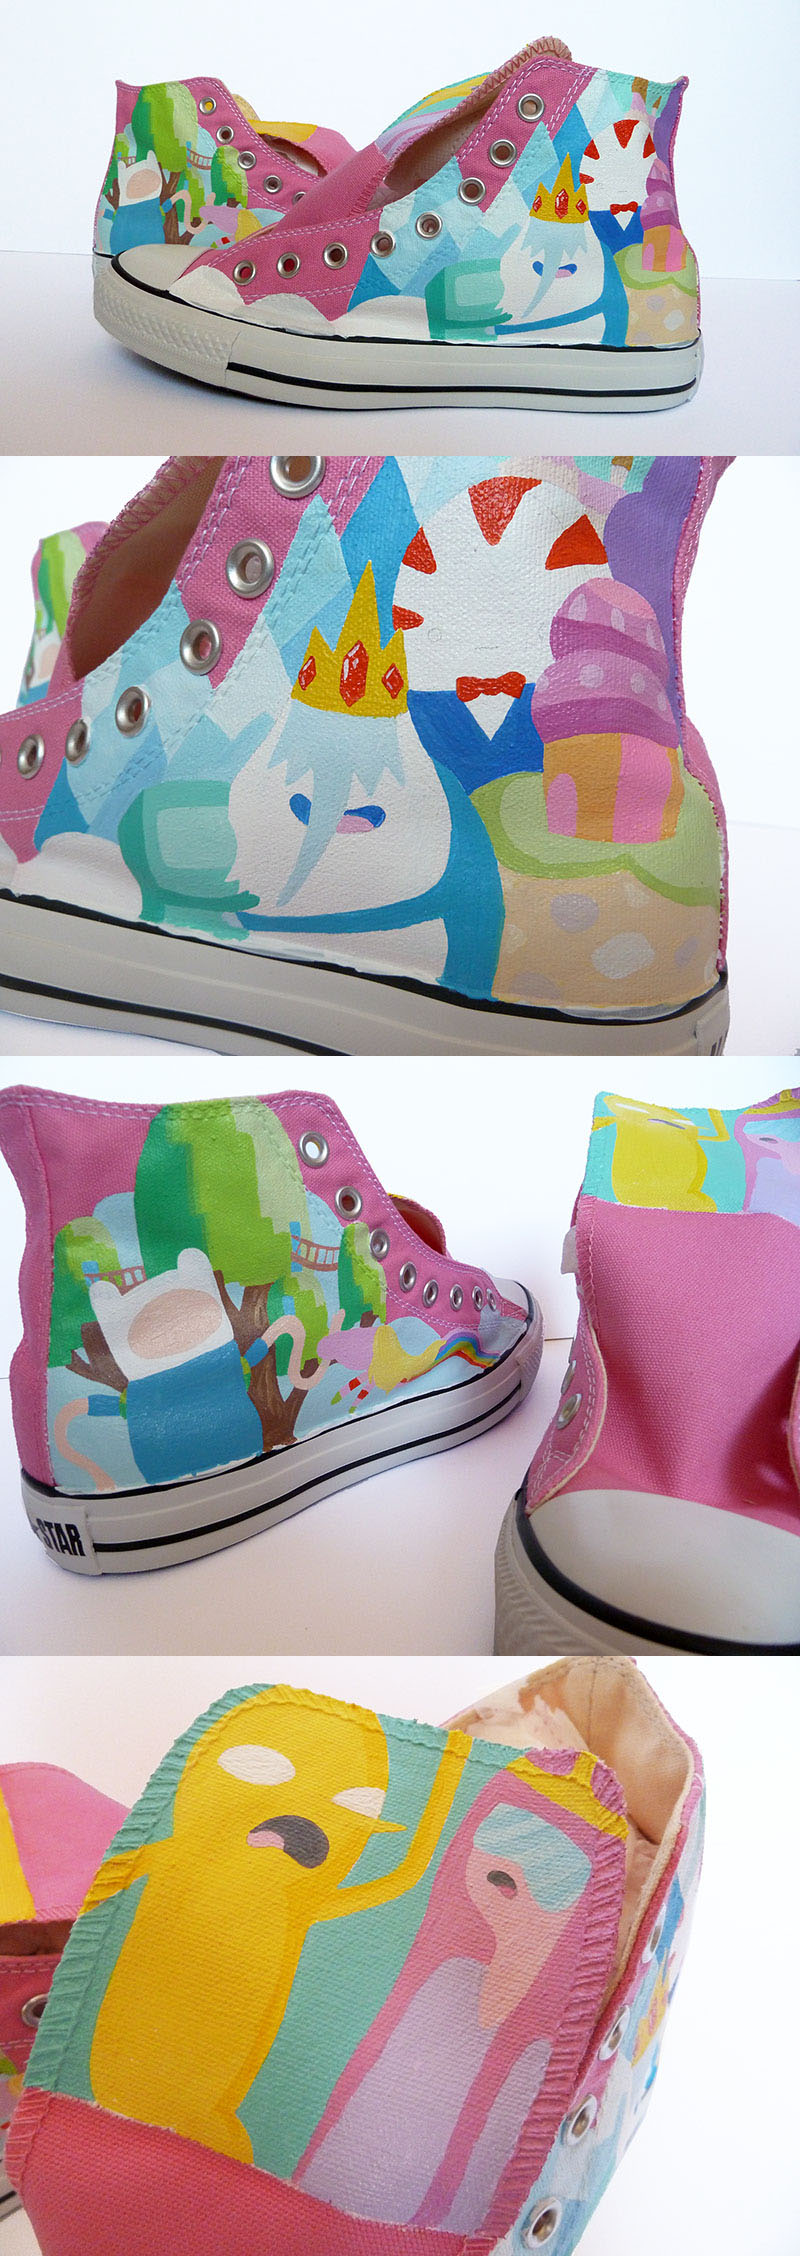 Work in Progress - The Land of Ooo Converse by ponychops